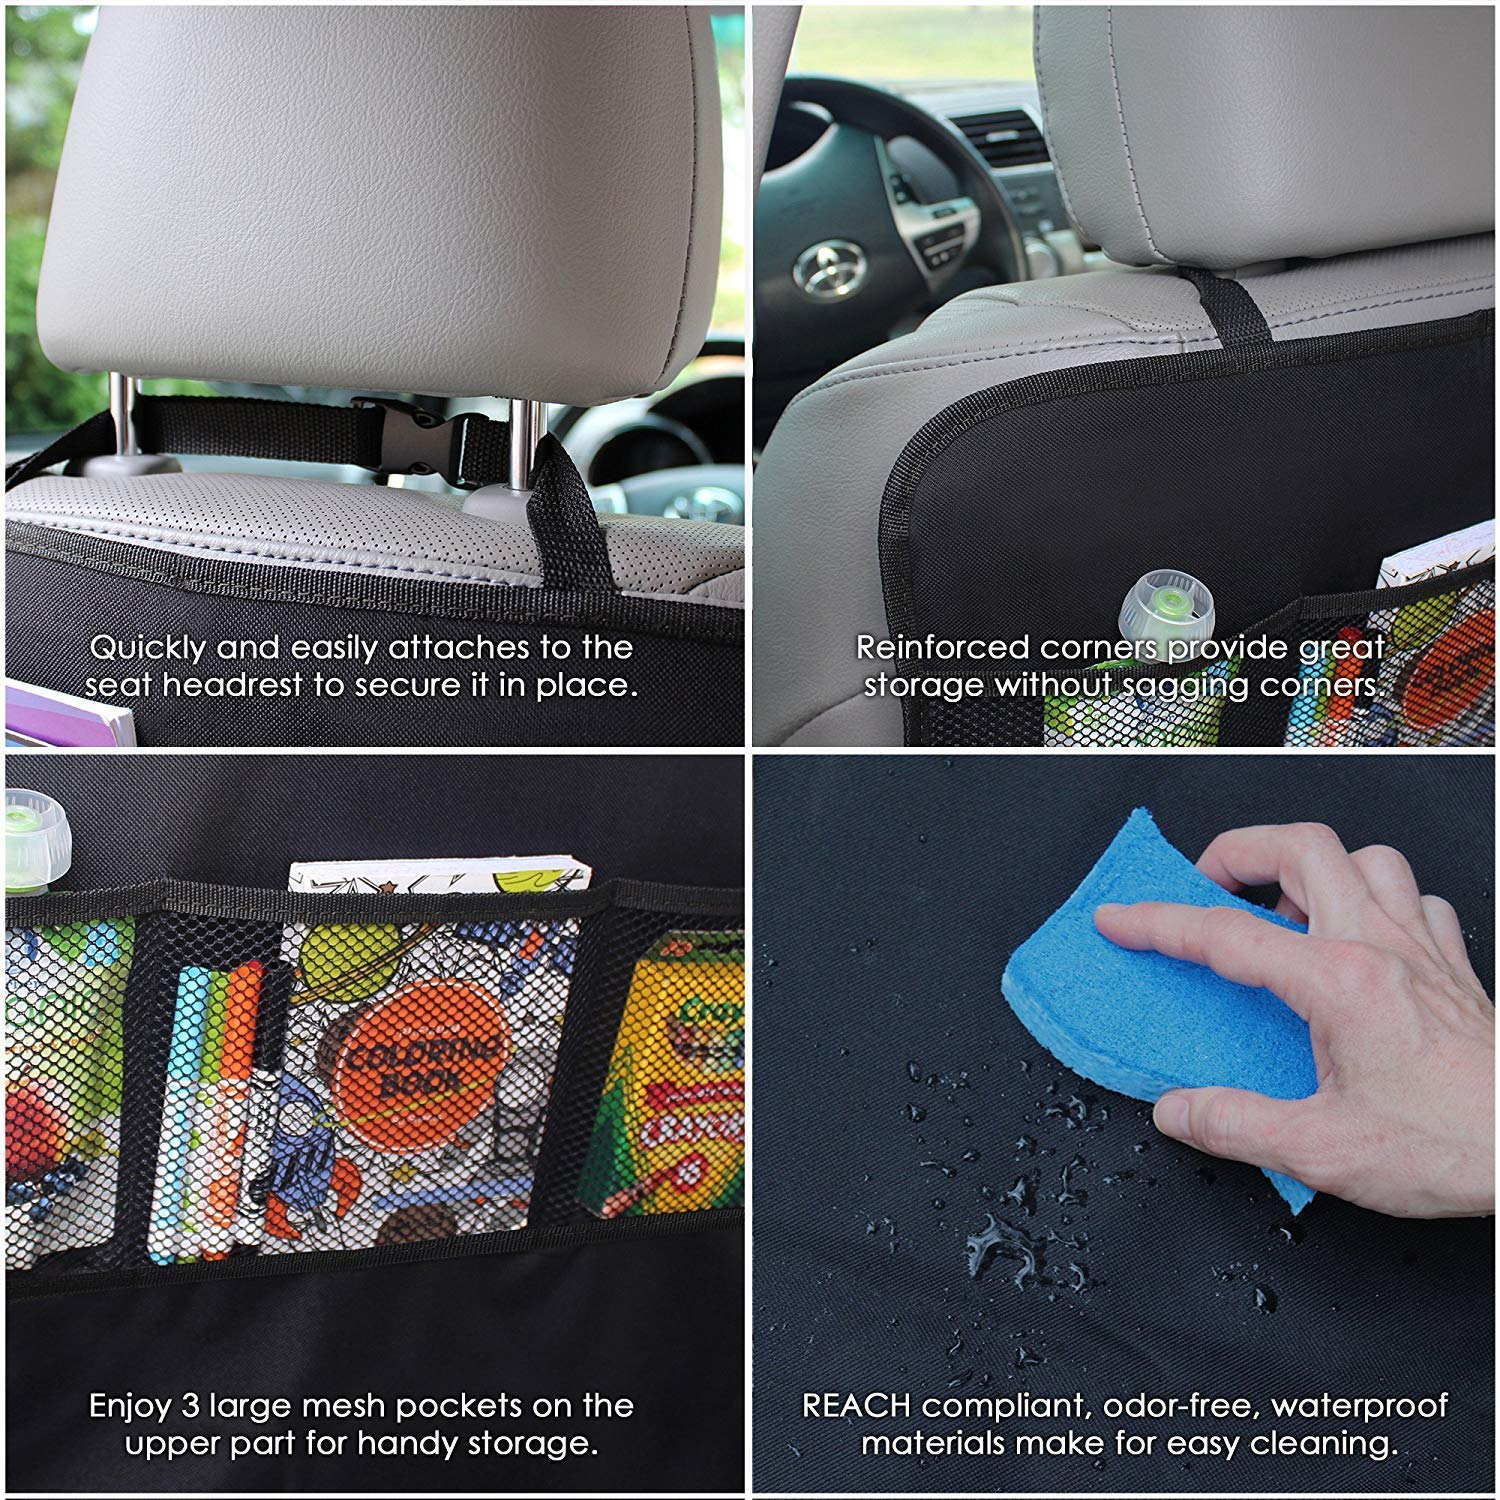 XBRN 2 Pack Kick Mat Car Seat Protector and Back Seat Storage Organizer Child Kick Guard Protects Automotive Leather Fabric from Dirt